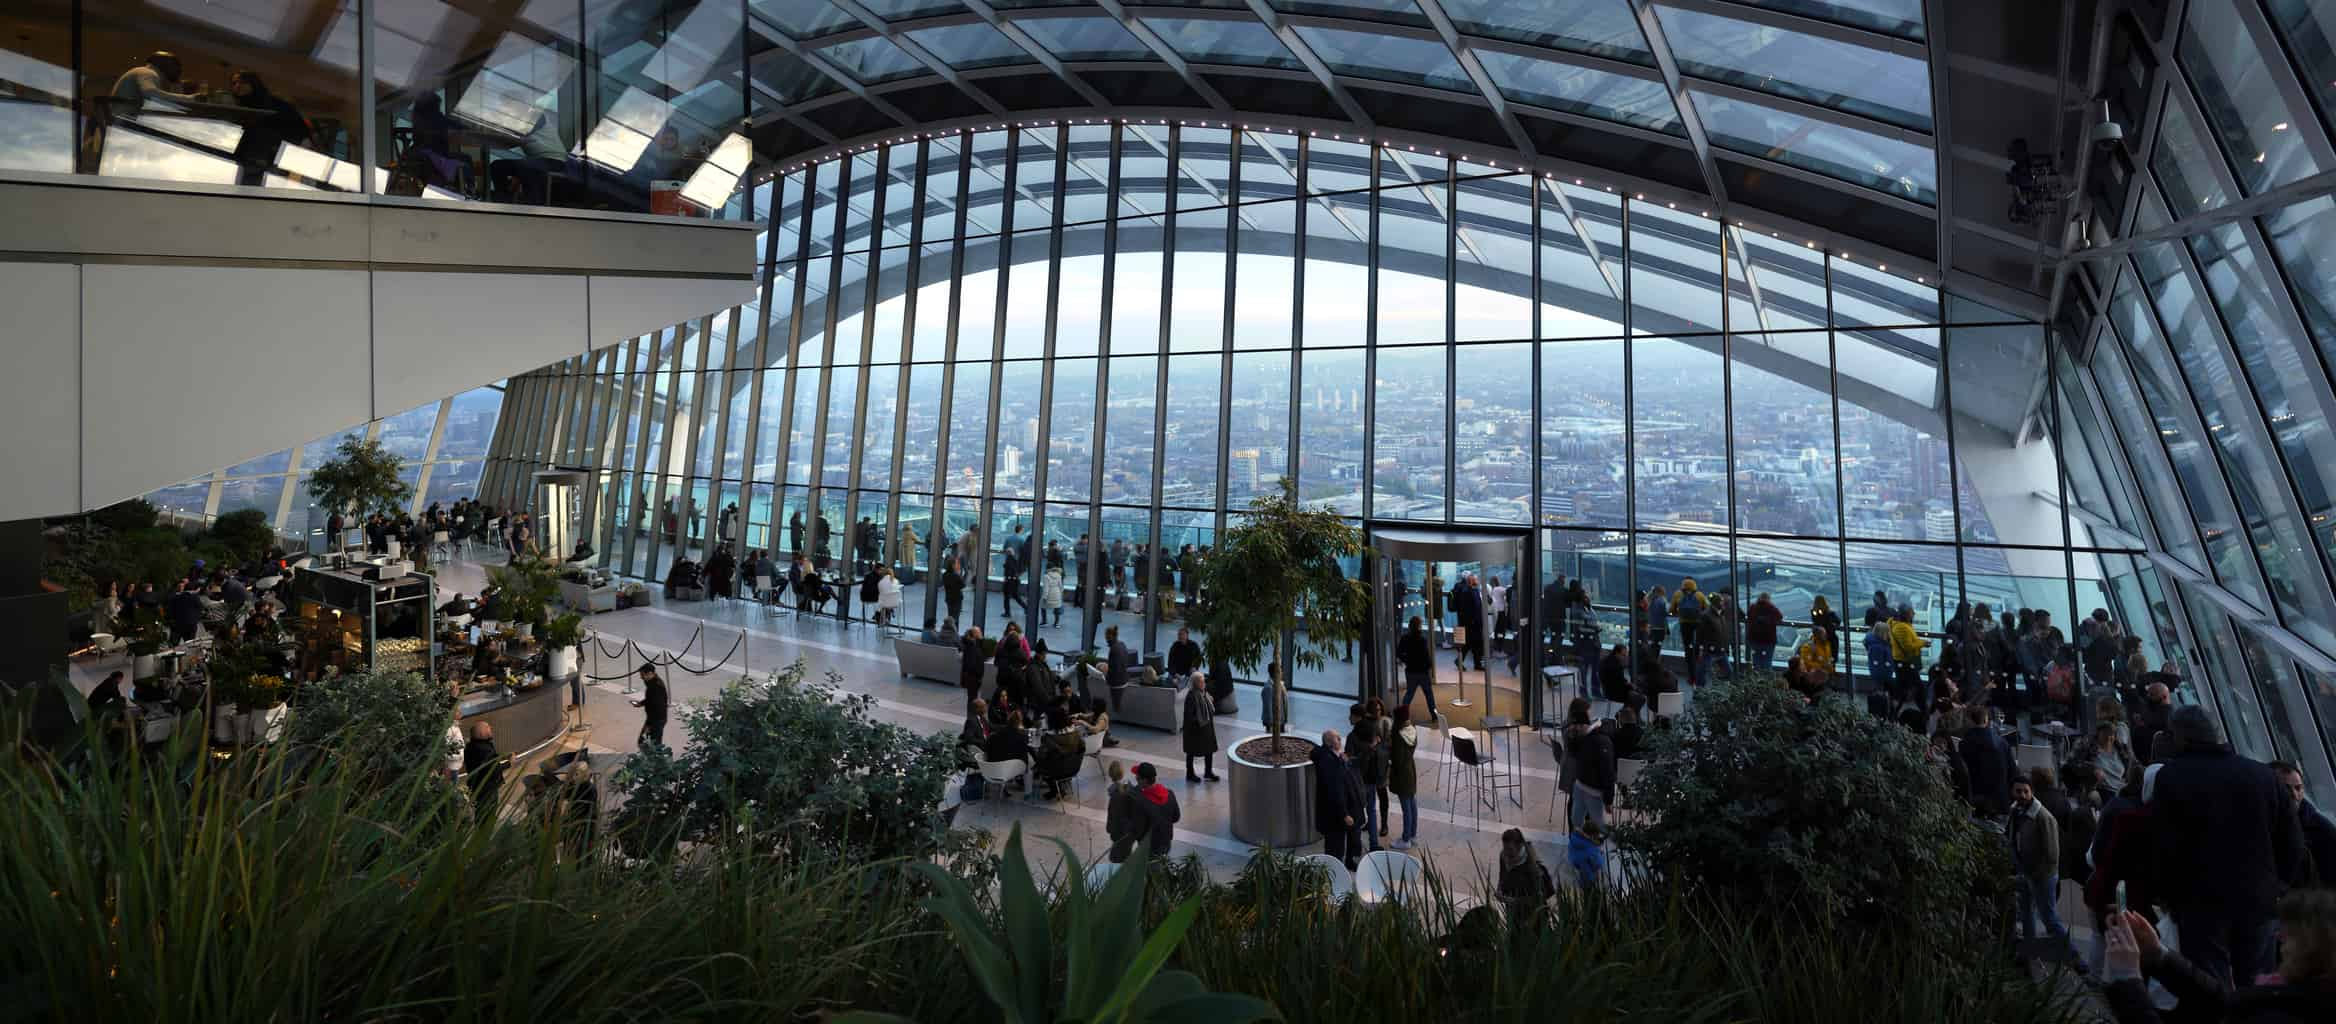 """View from inside """"Sky Garden"""" in 20 Fenchurch Street London with people milling about"""